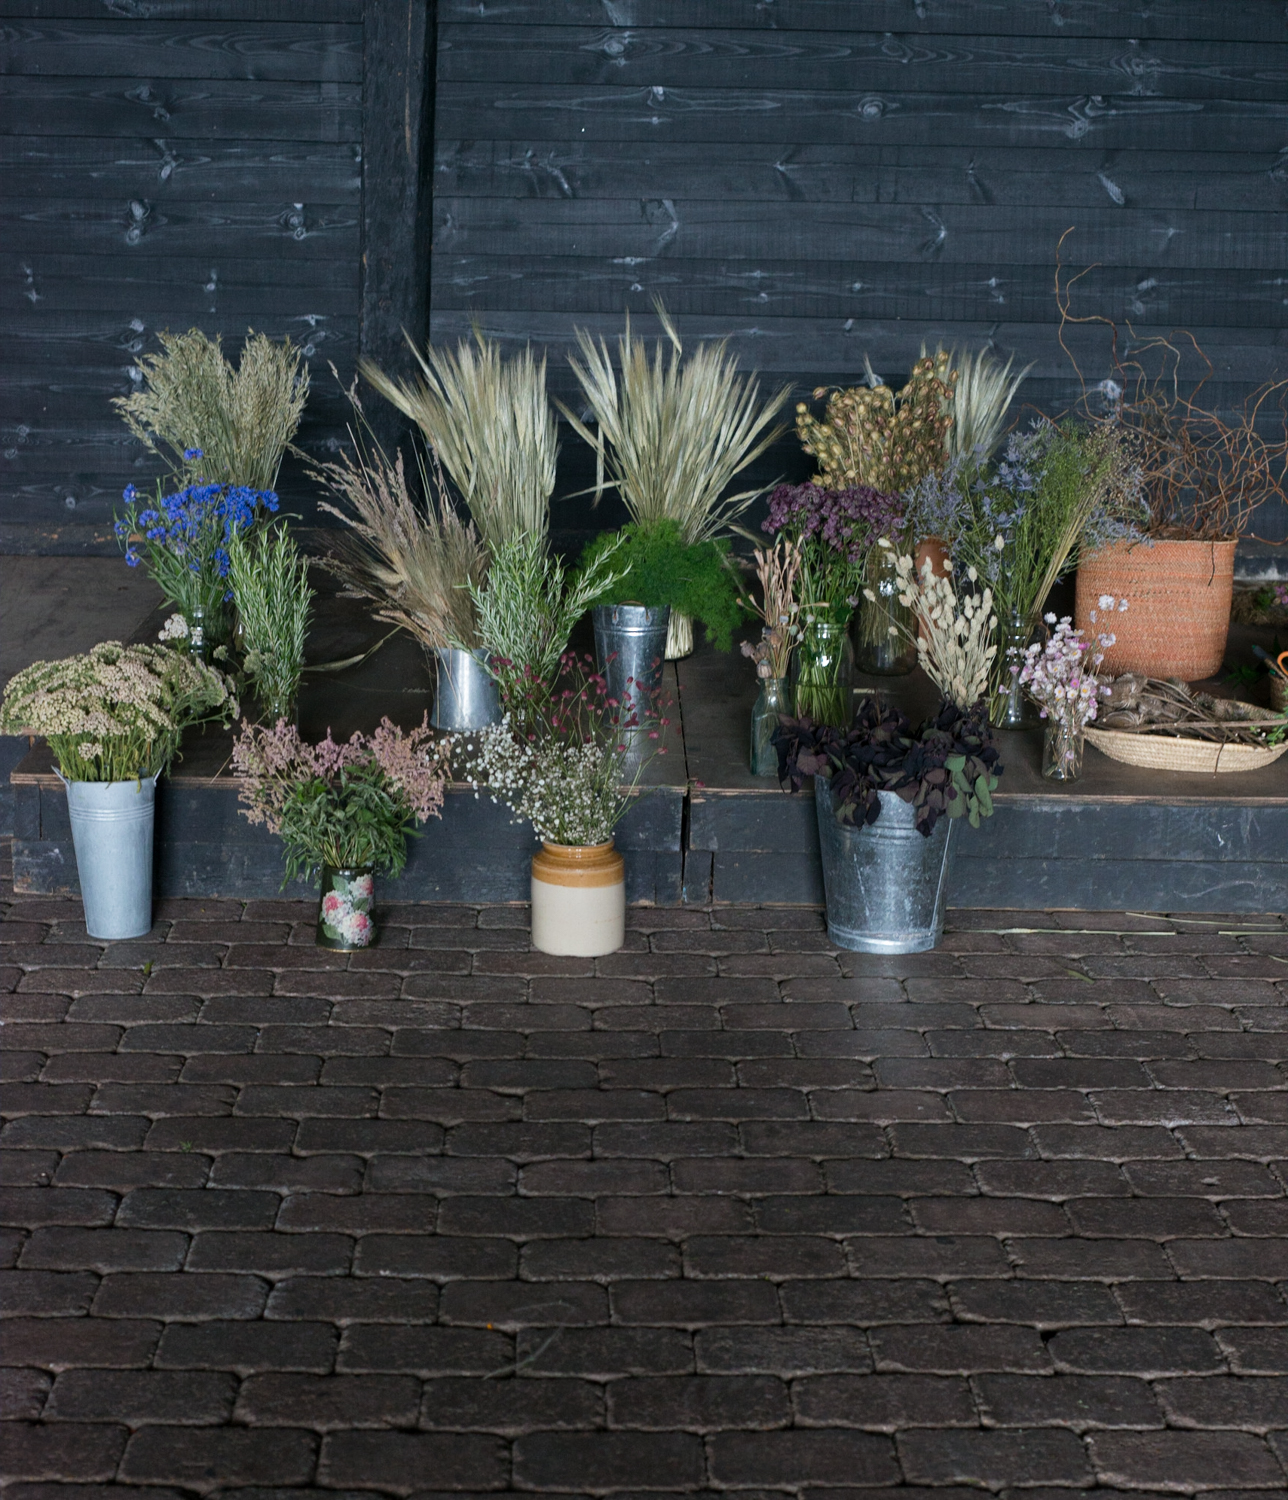 TNS day two floral wreath session-4.jpg